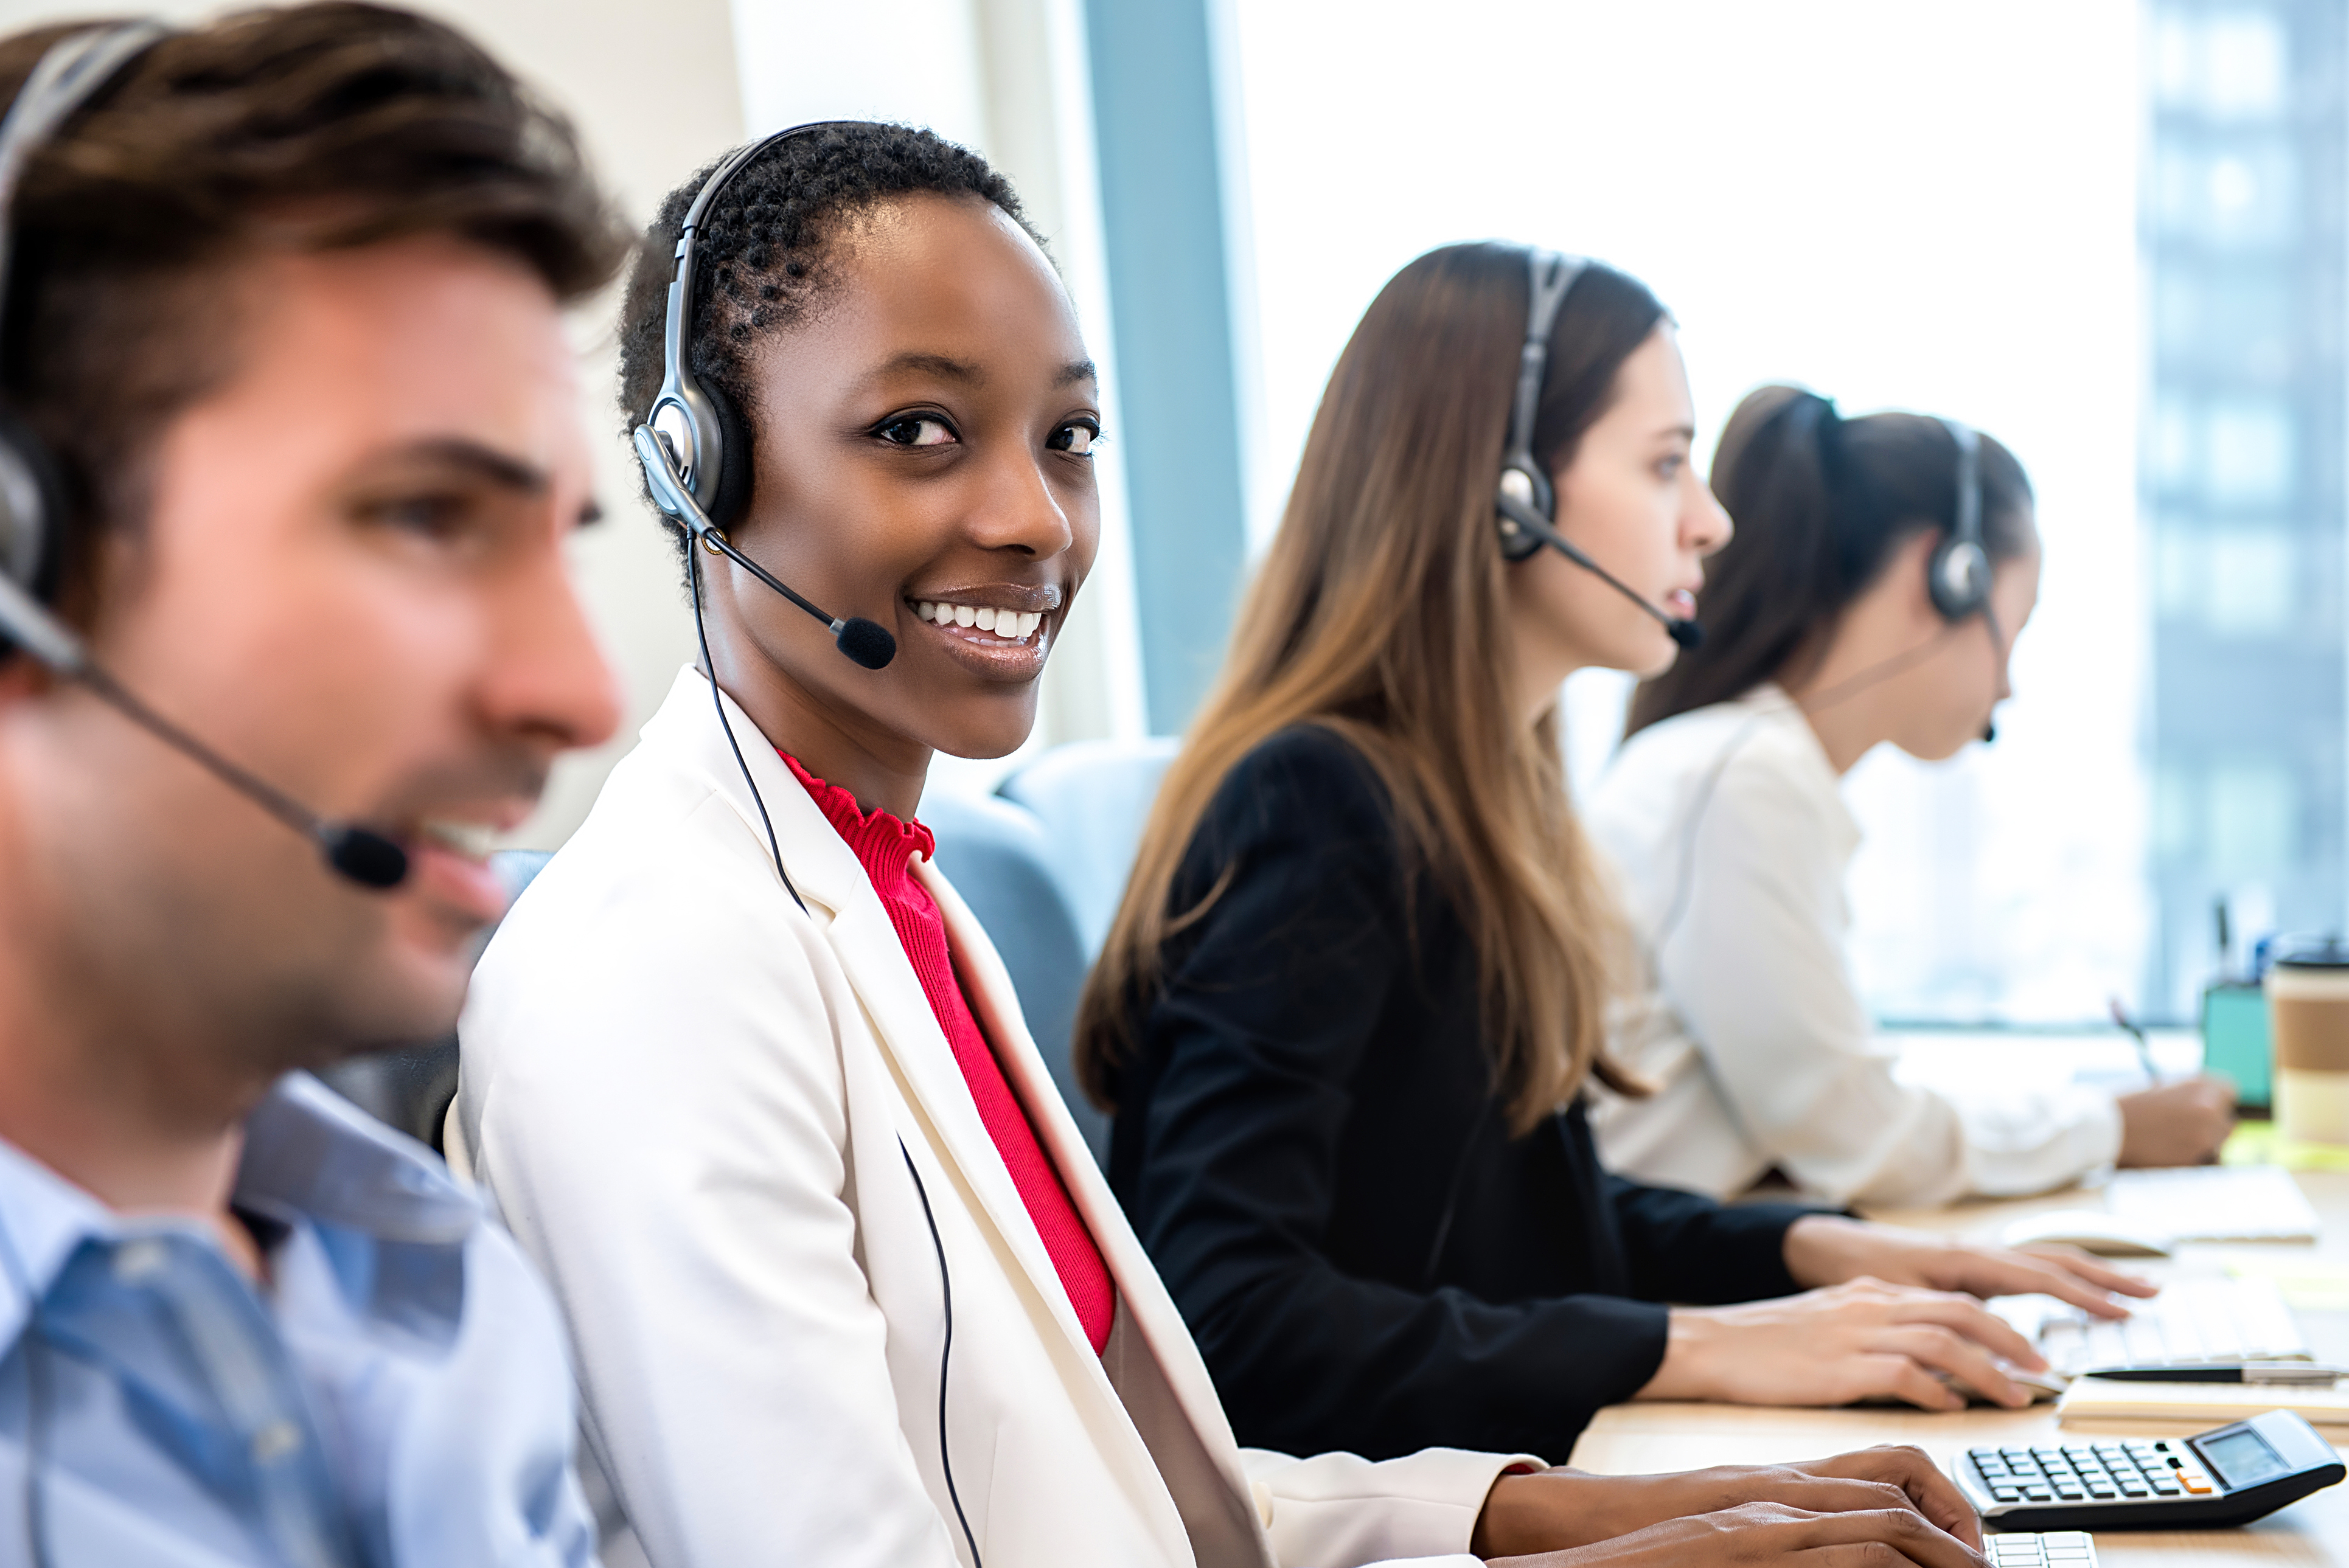 Smiling beautiful African American woman working in call center with diverse team